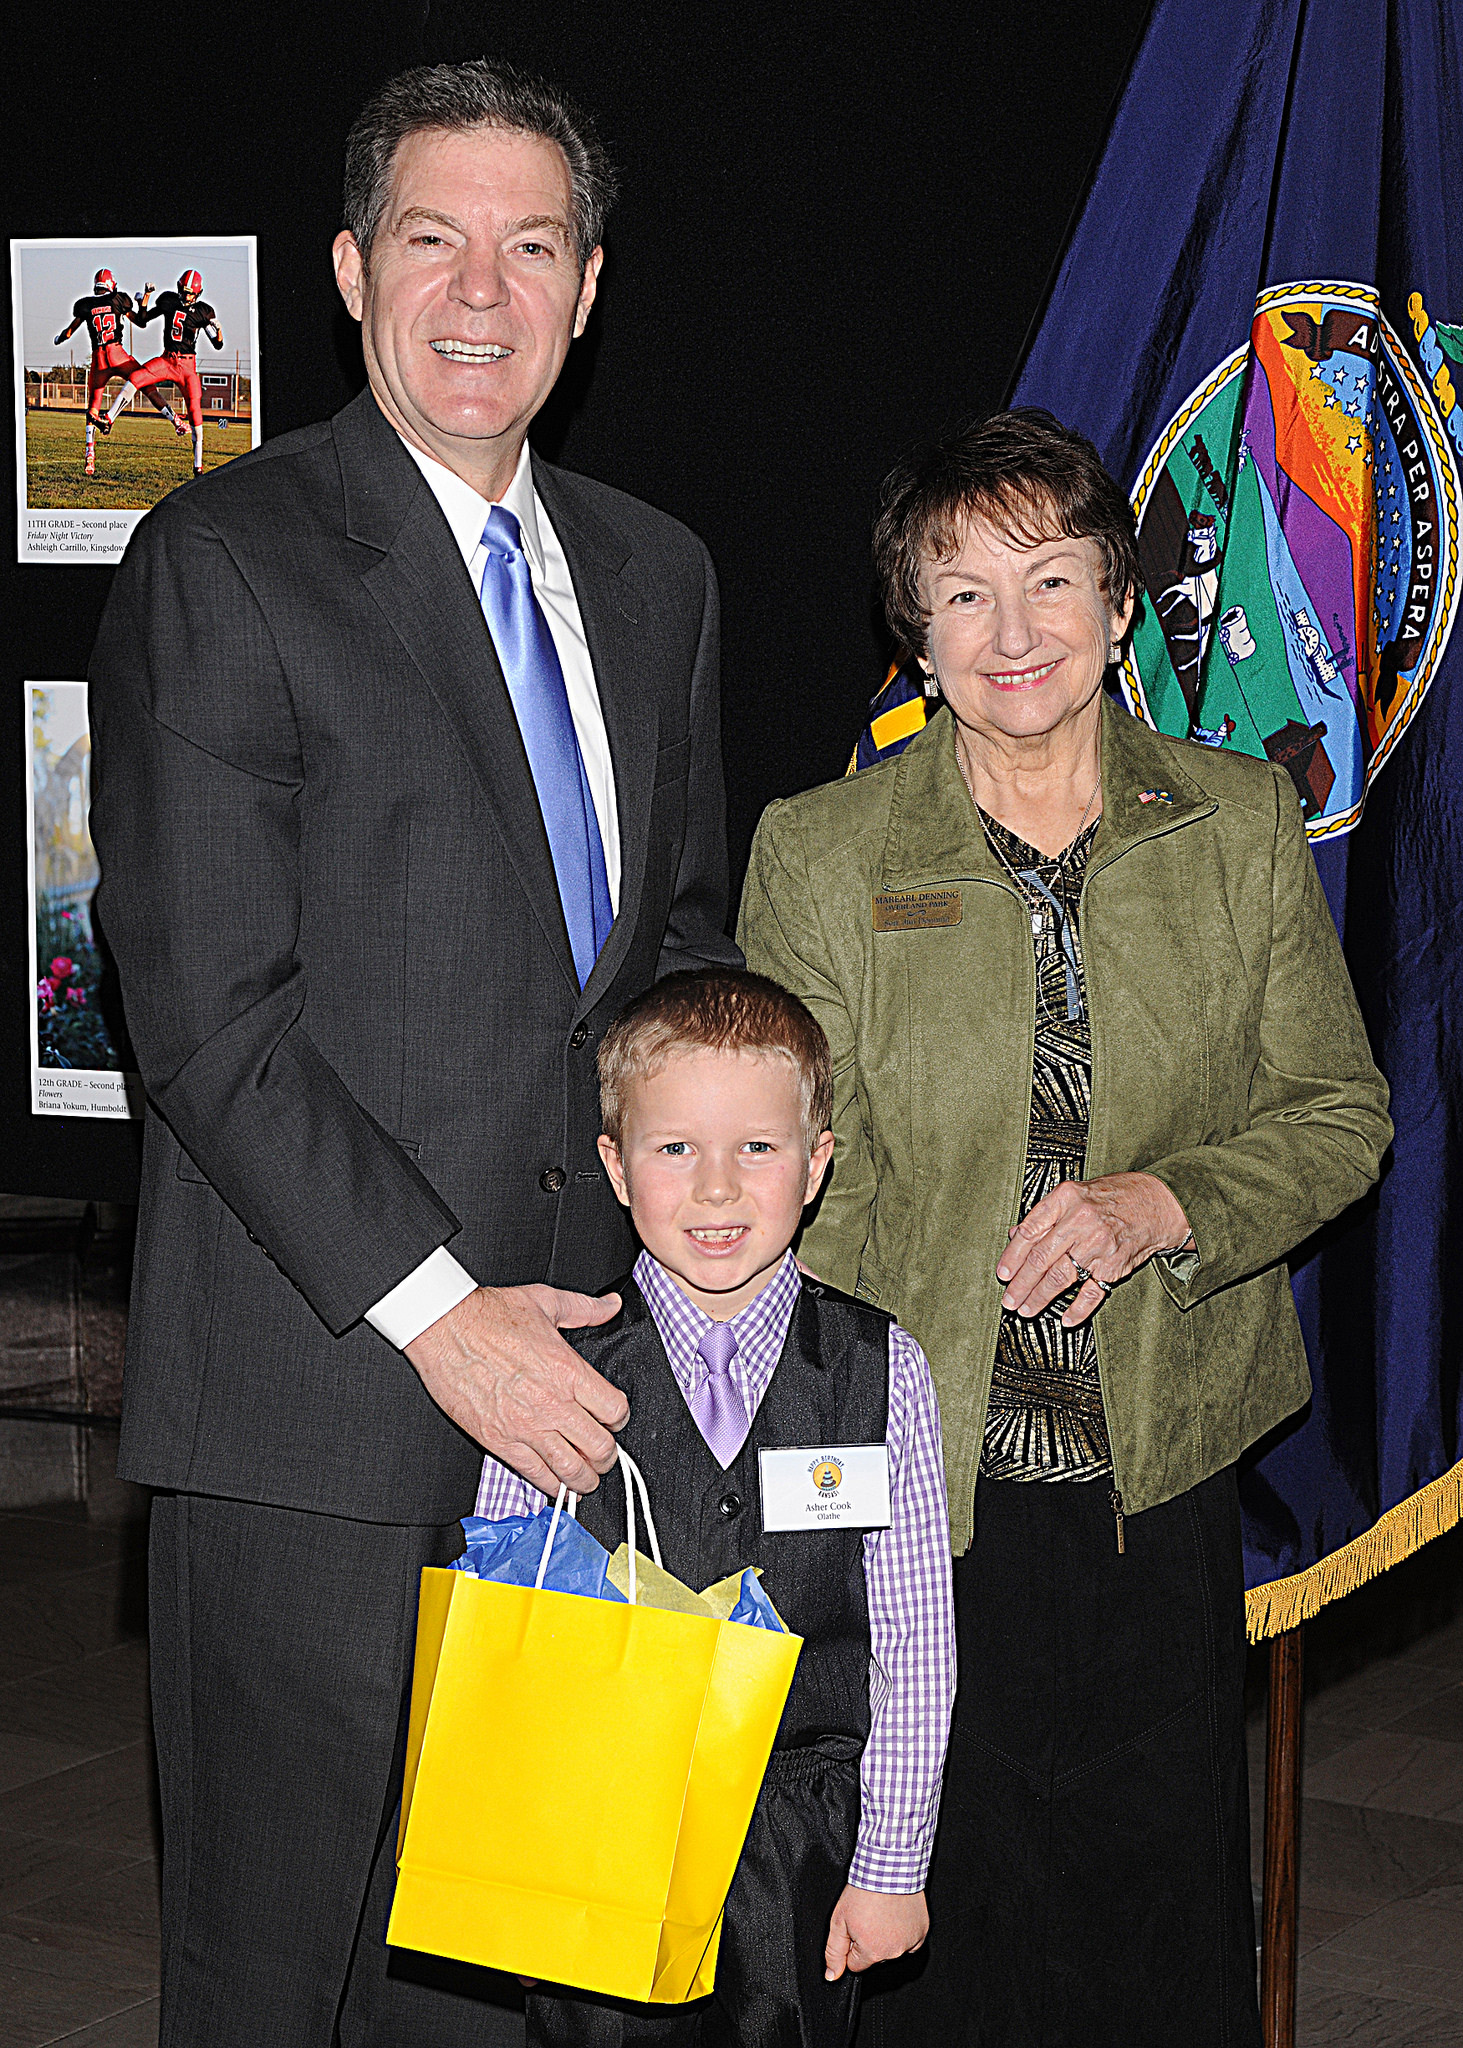 First grade winner Asher Cook with Governor Sam Brownback and Marearl Denning